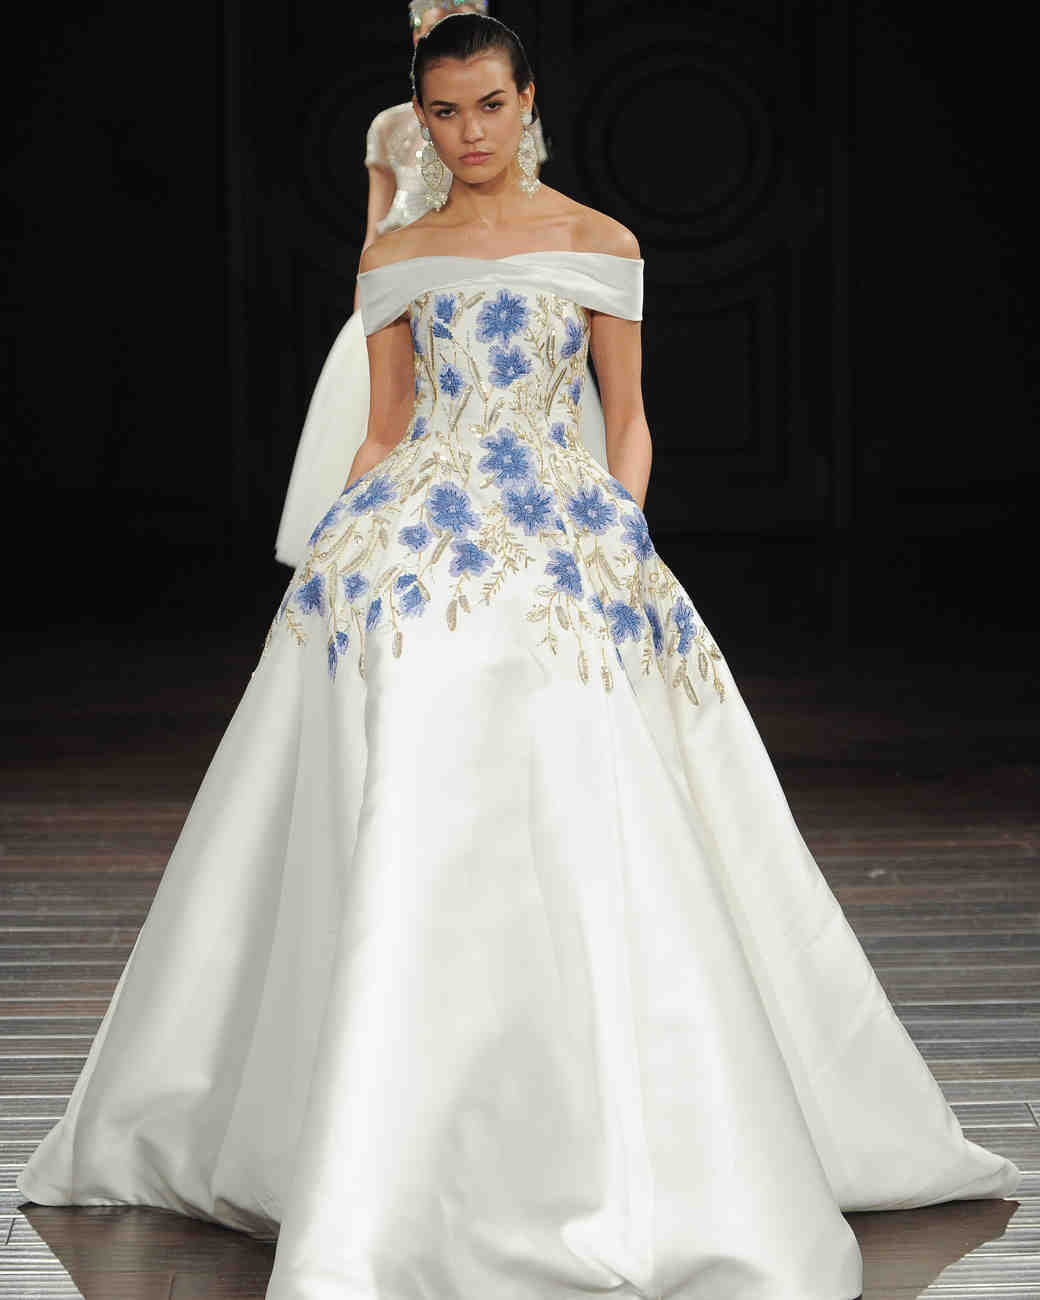 Off-the-Shoulder Wedding Gown with Blue Flowers and Pockets